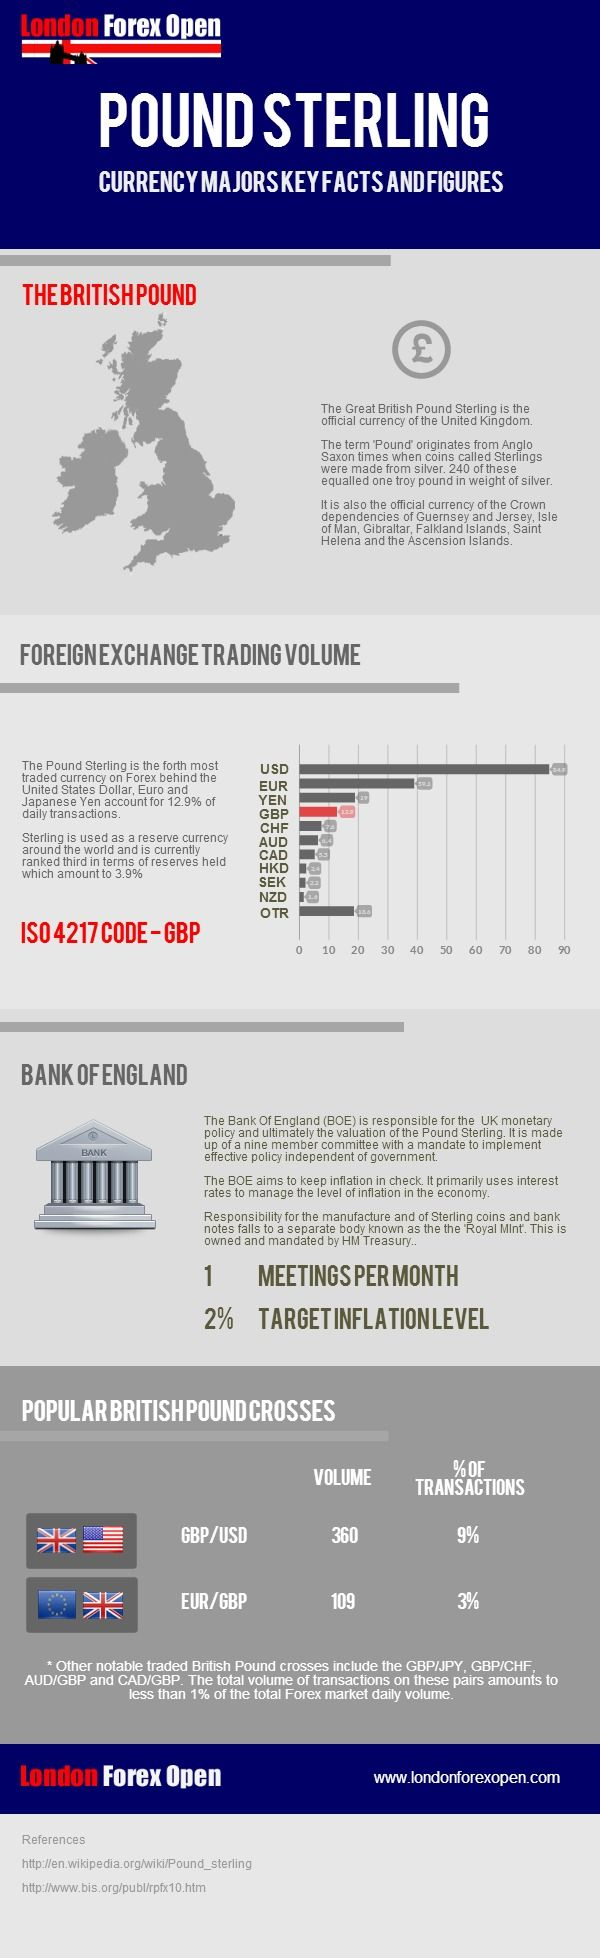 A infographic providing information on the British Pound Sterling.